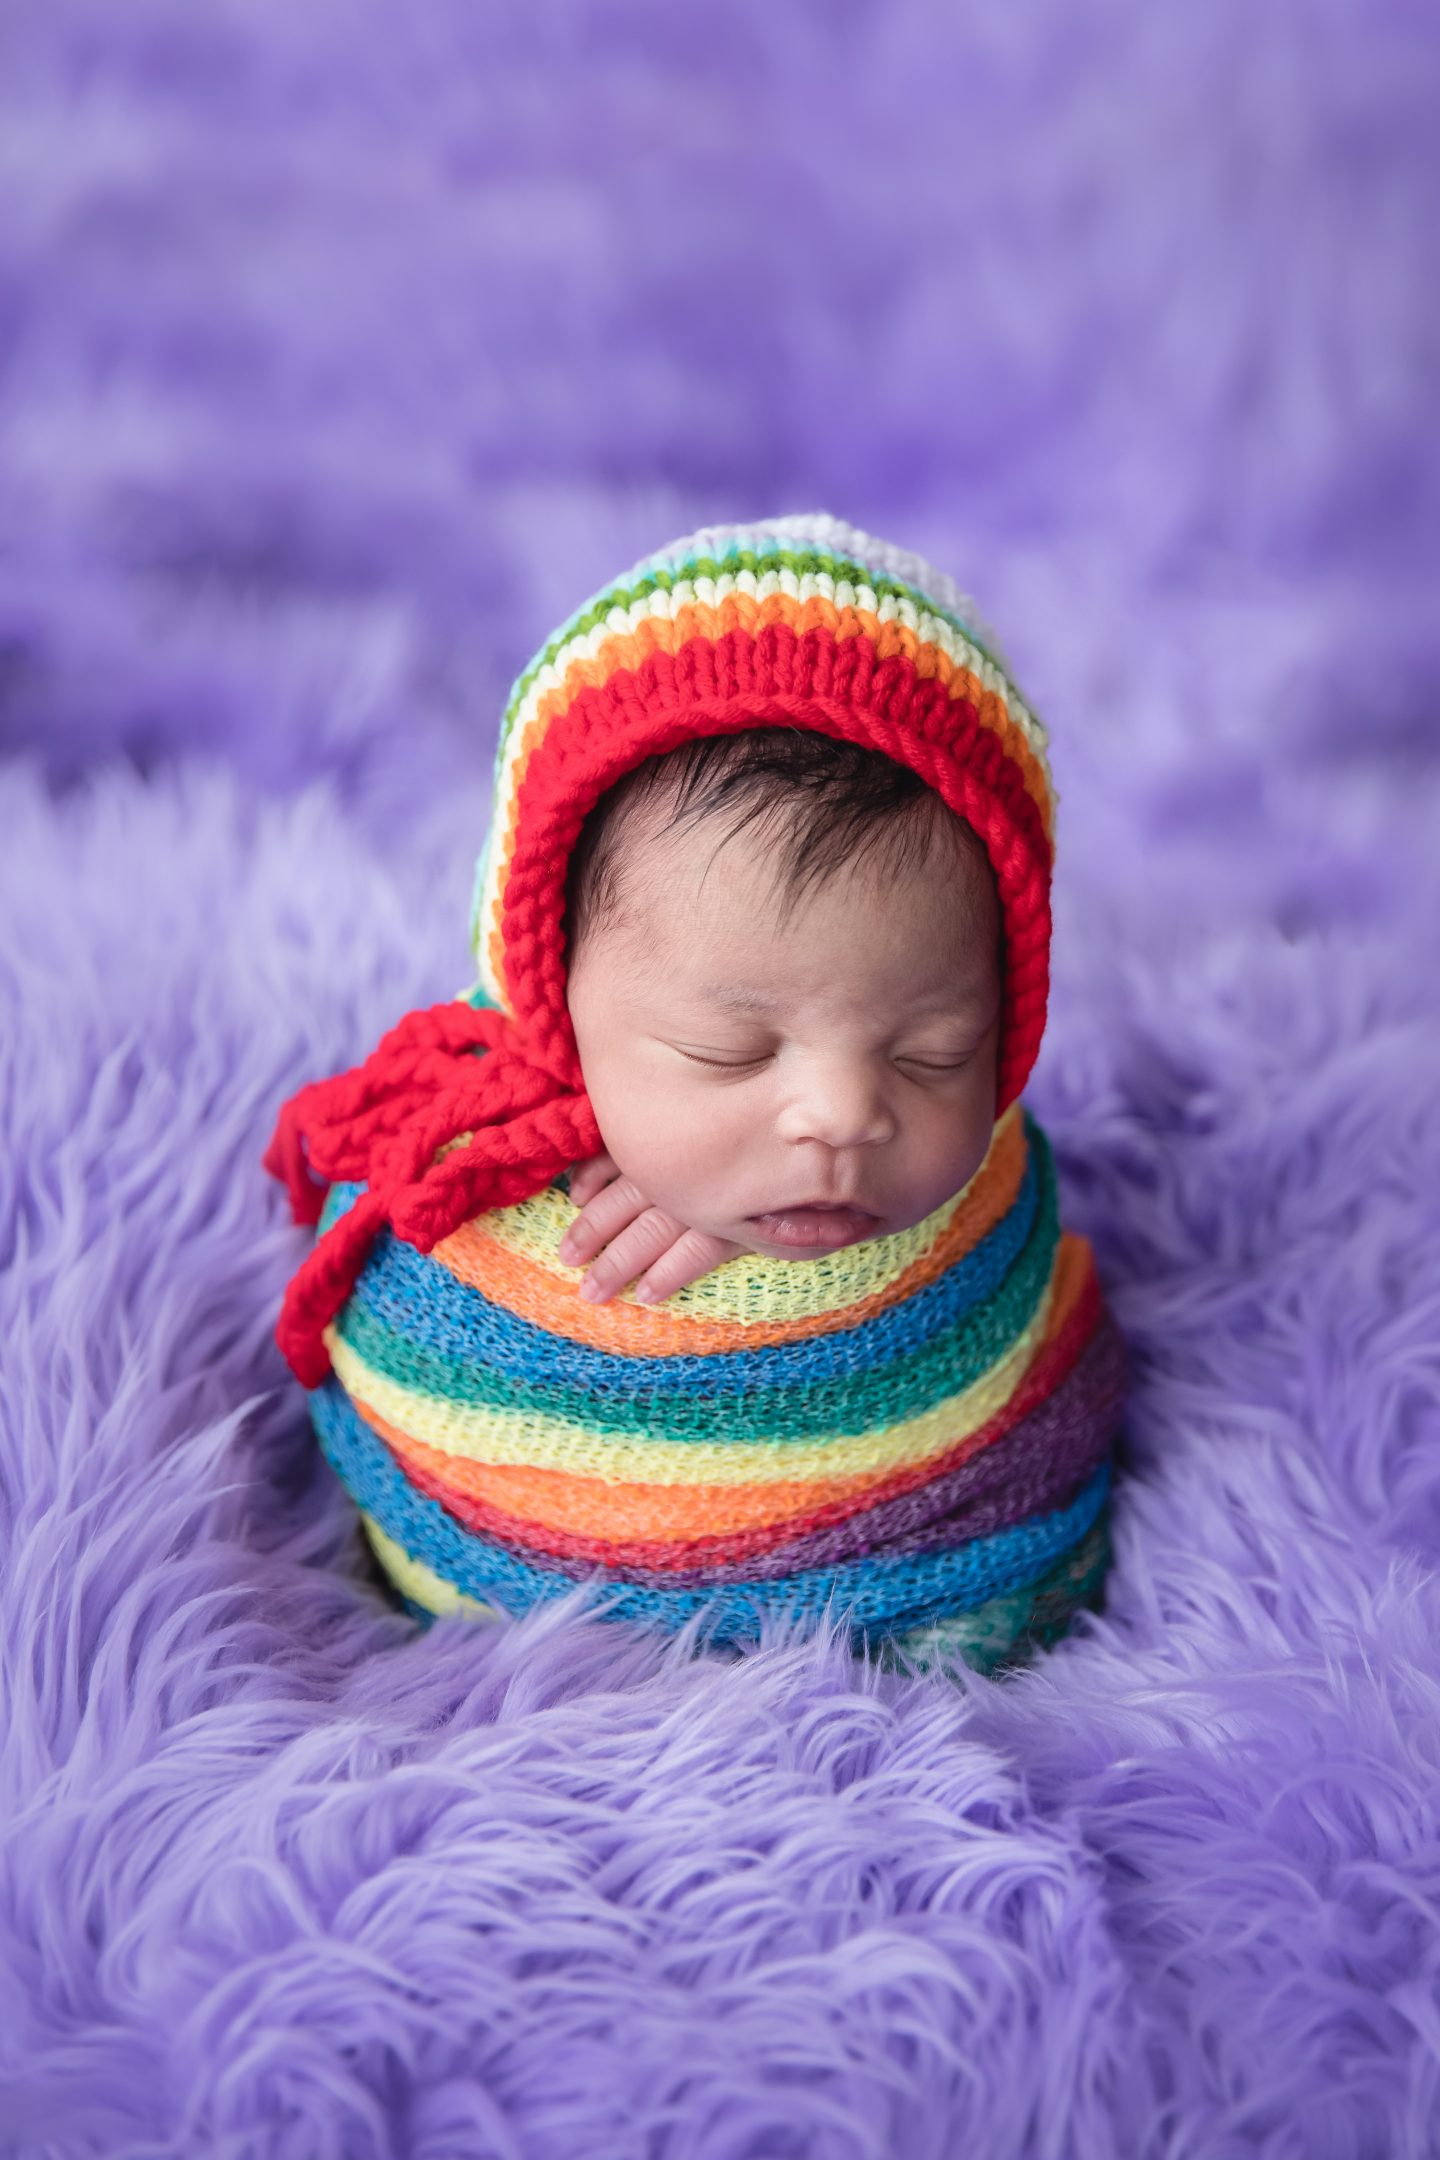 Rainbow baby after pregnancy loss and miscarriage